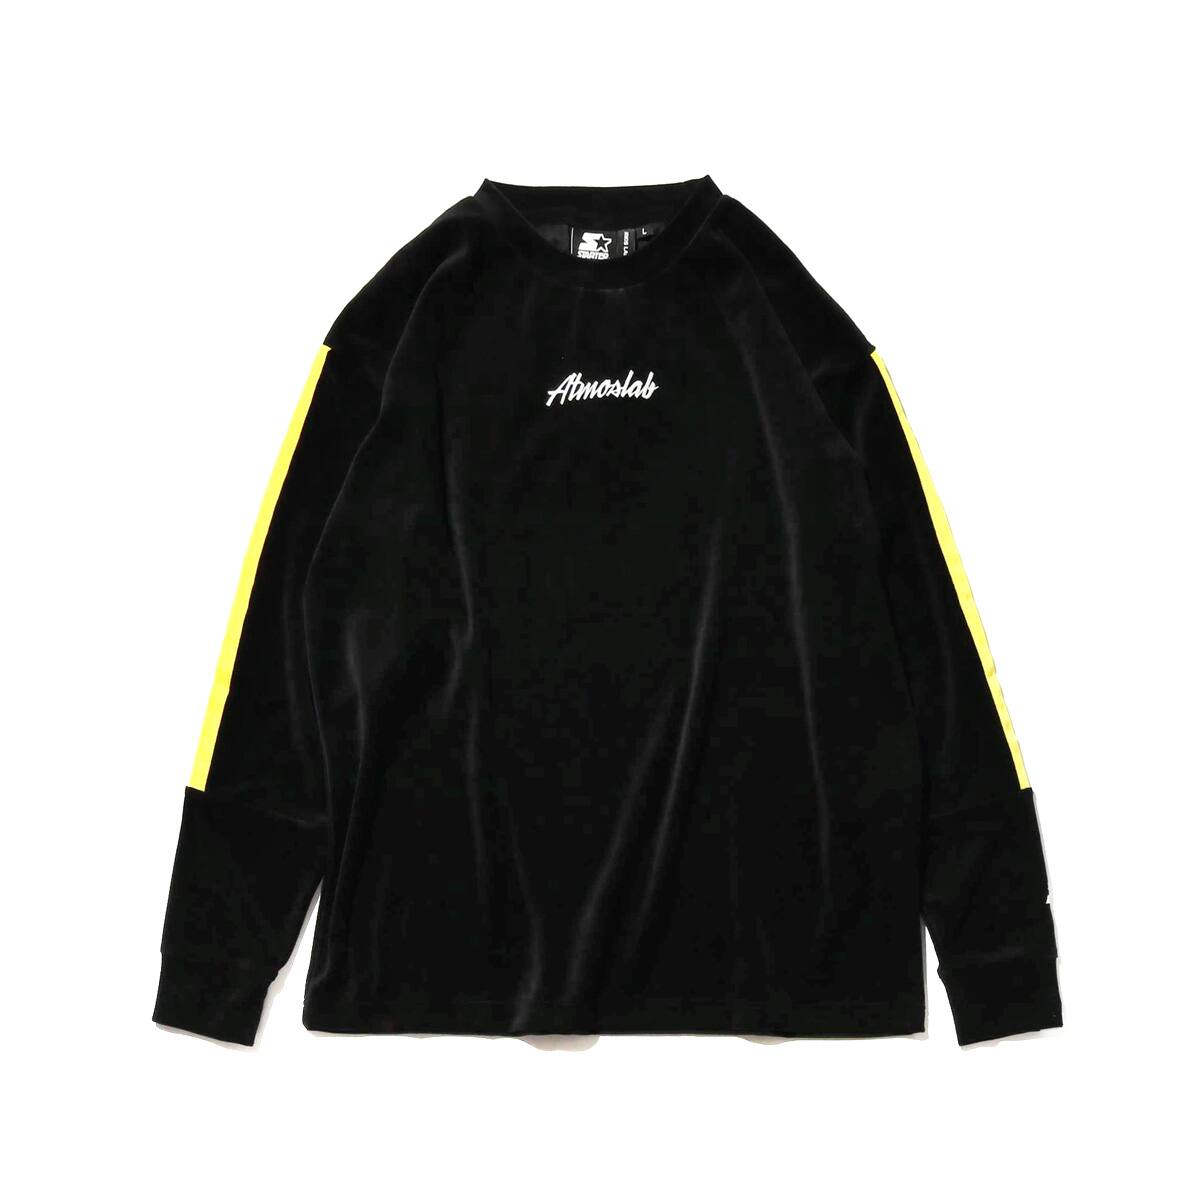 STARTER BLACK LABEL x ATMOS LAB WARM UP VELOUR LONG SLEEVE  yellow_photo_large